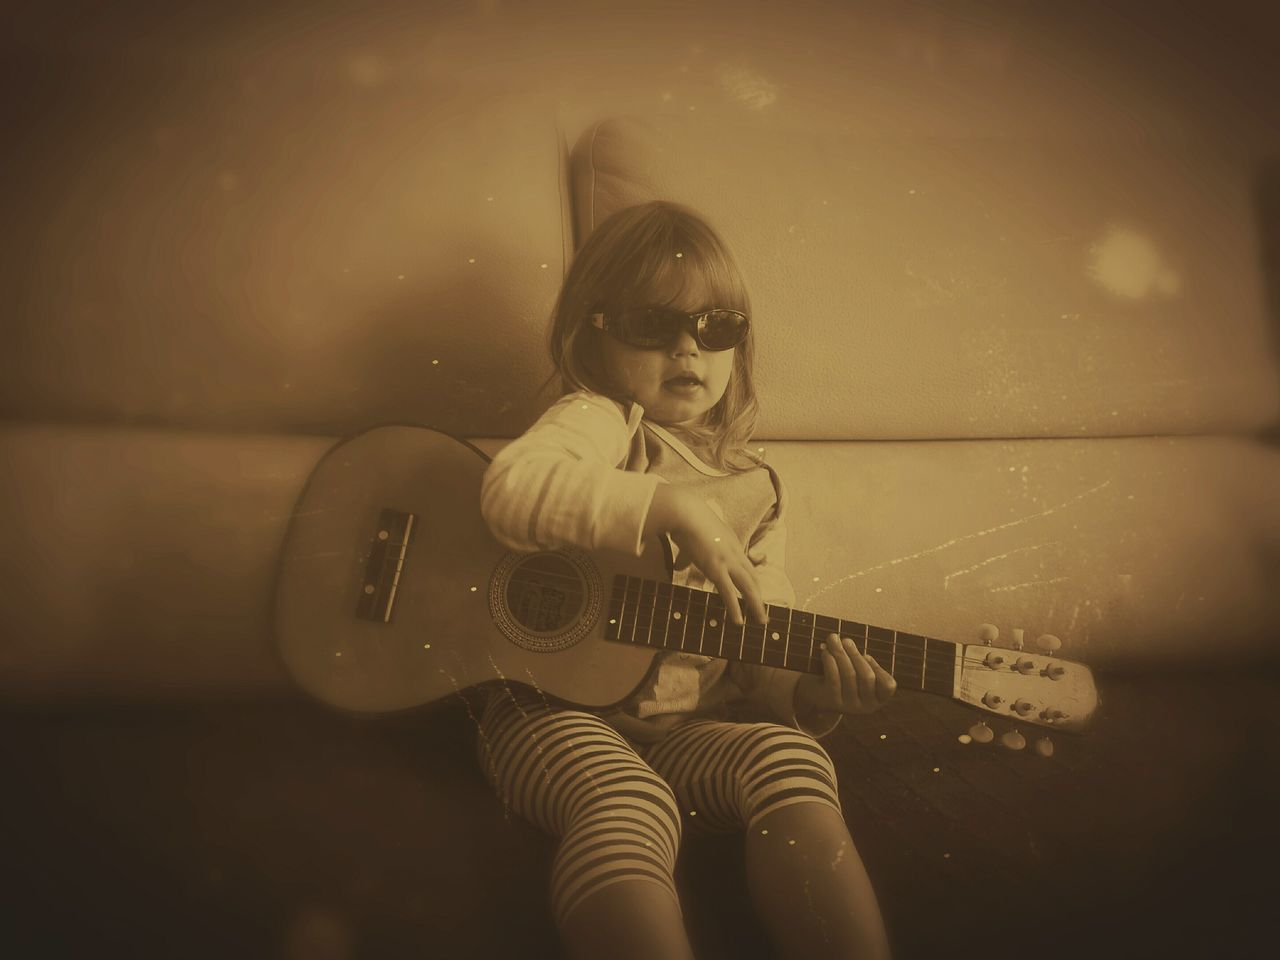 One Person Lifestyles Protection Guitar Guitar Love Kids B&w B&W Photo Lifestyle Scenics The Portraitist - 2017 EyeEm Awards Learn & Shoot: Simplicity Learn Something New Everyday Monochrome Monochrome _ Collection Little Musician Music Lesson Blues Guitar Young Rocker Country Music Music Sepia Photography Sepia Tone Loving Sepia_collection Live For The Story Girl